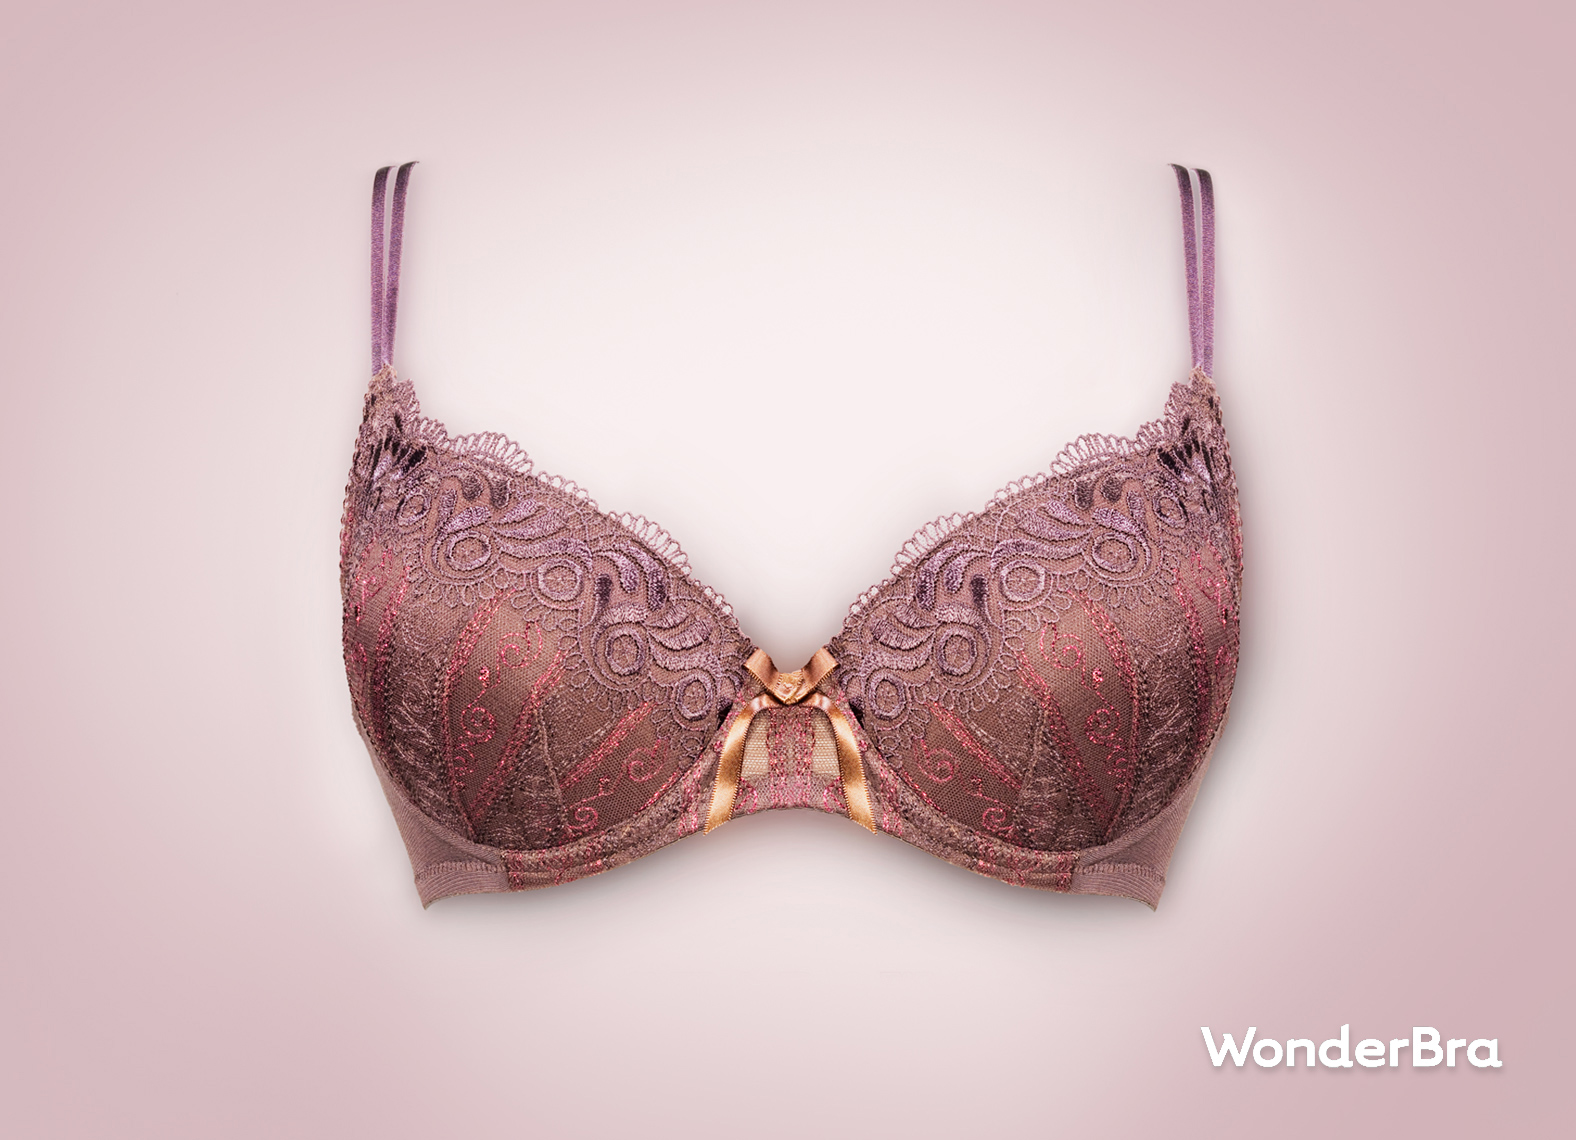 WonderbraPINKlogo